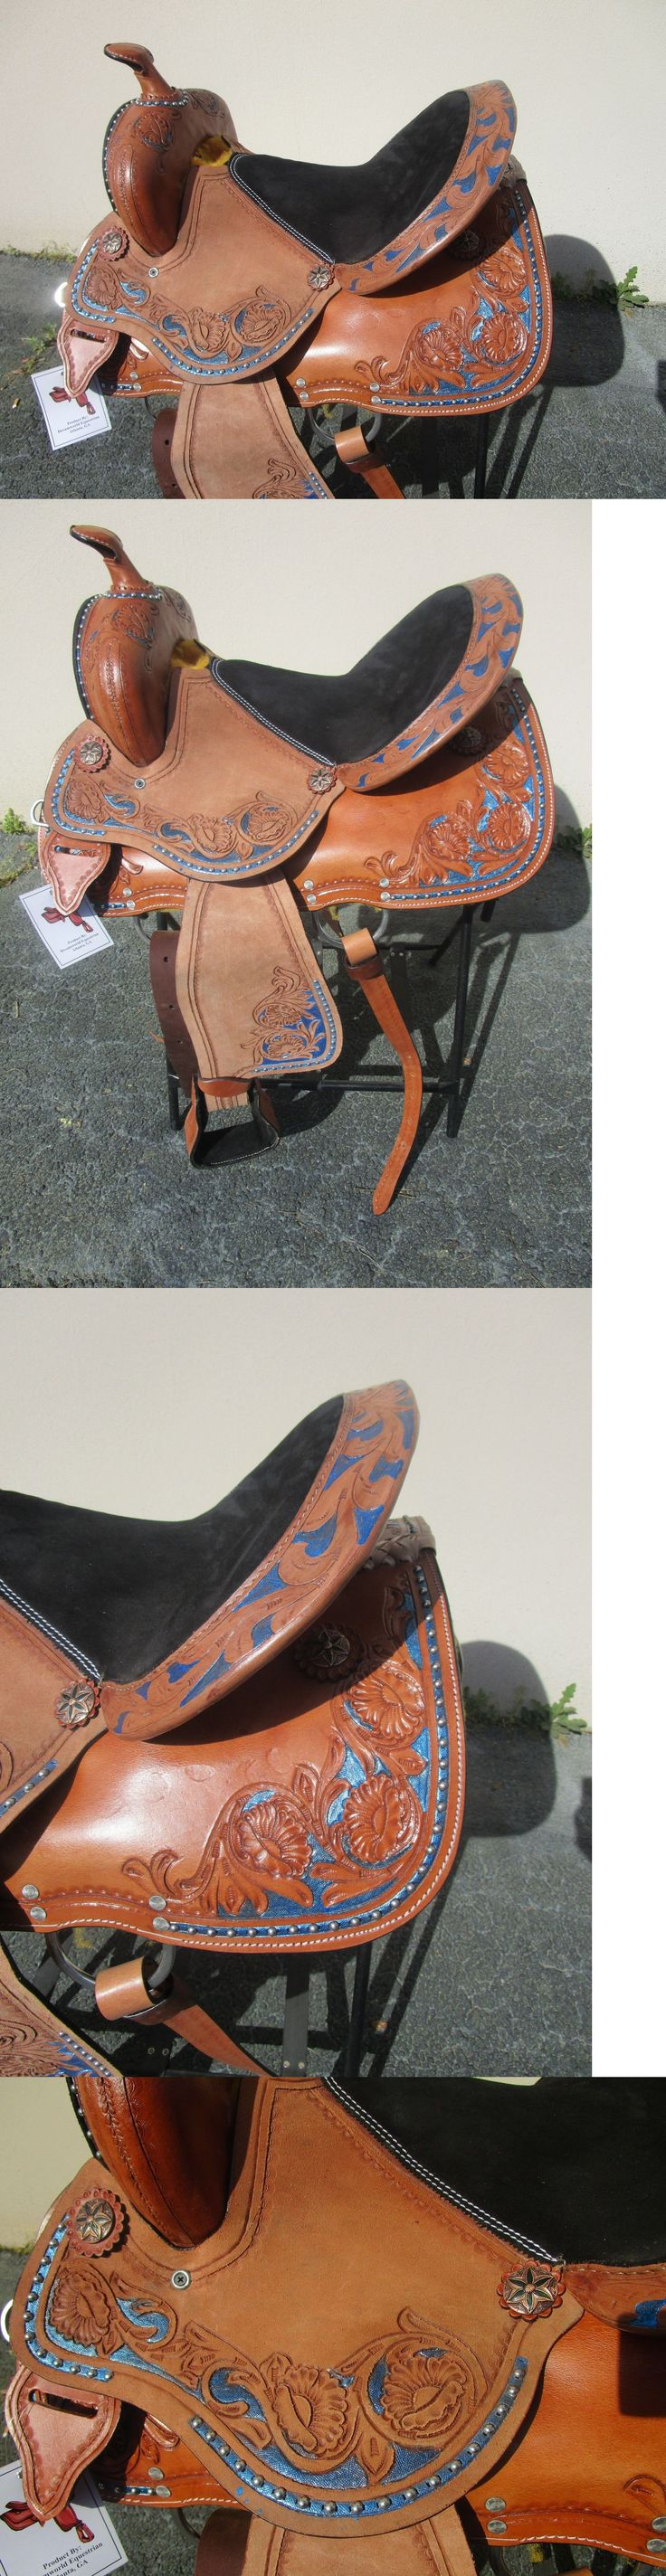 Saddles 47291: 15 Barrel Racing Show Blue Studded Floral Tooled Leather Western Horse Saddle BUY IT NOW ONLY: $278.99